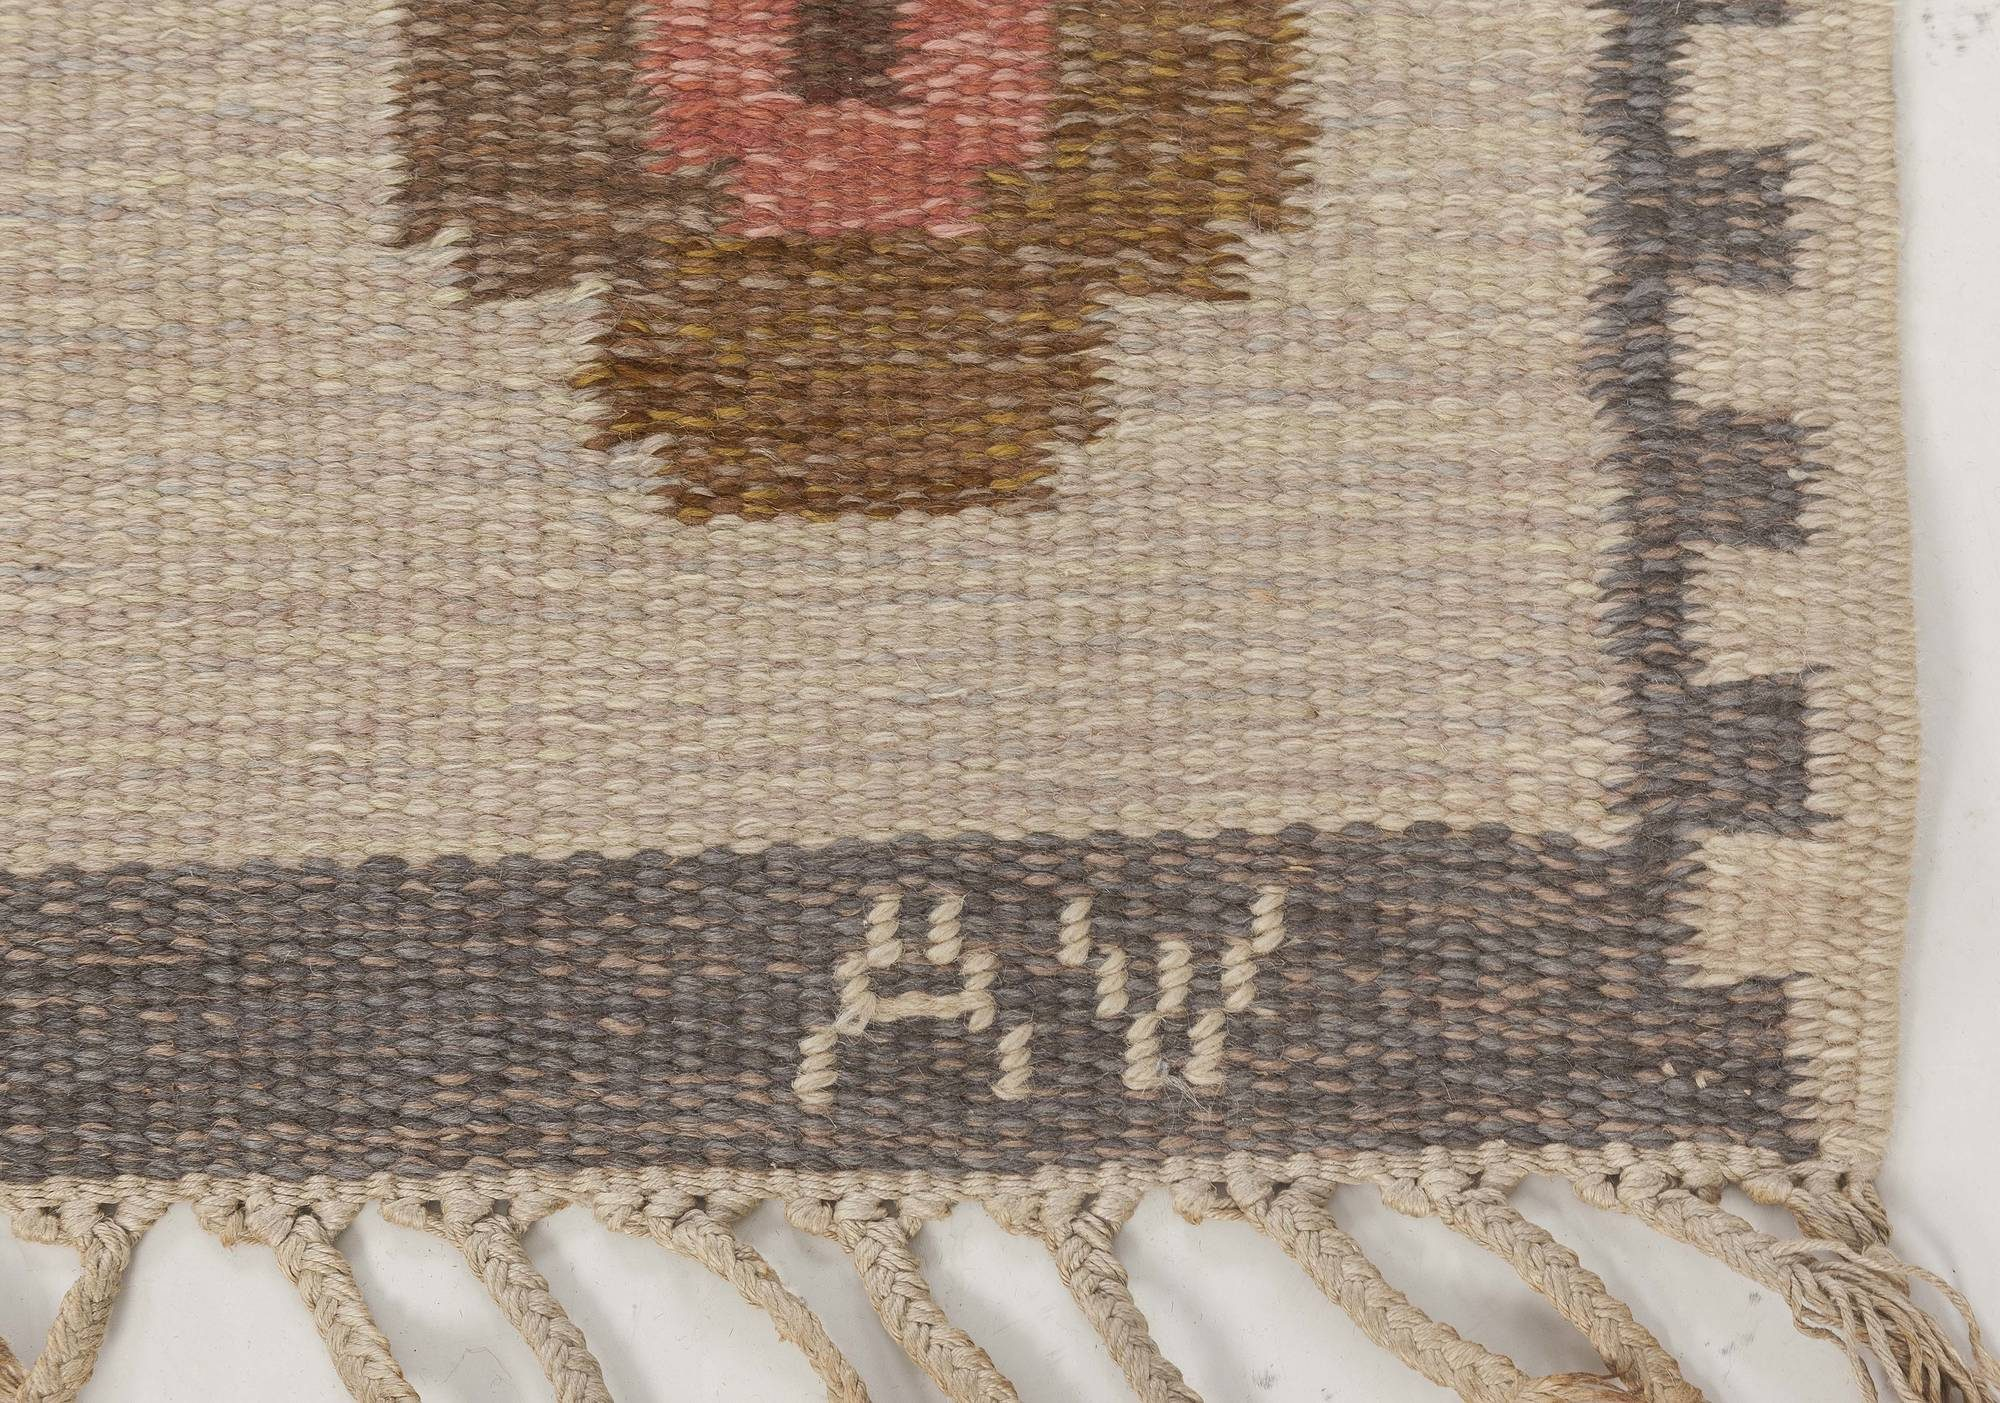 Midcentury Swedish Flat-Weave Wool Rug Signed With Initials WA BB6560